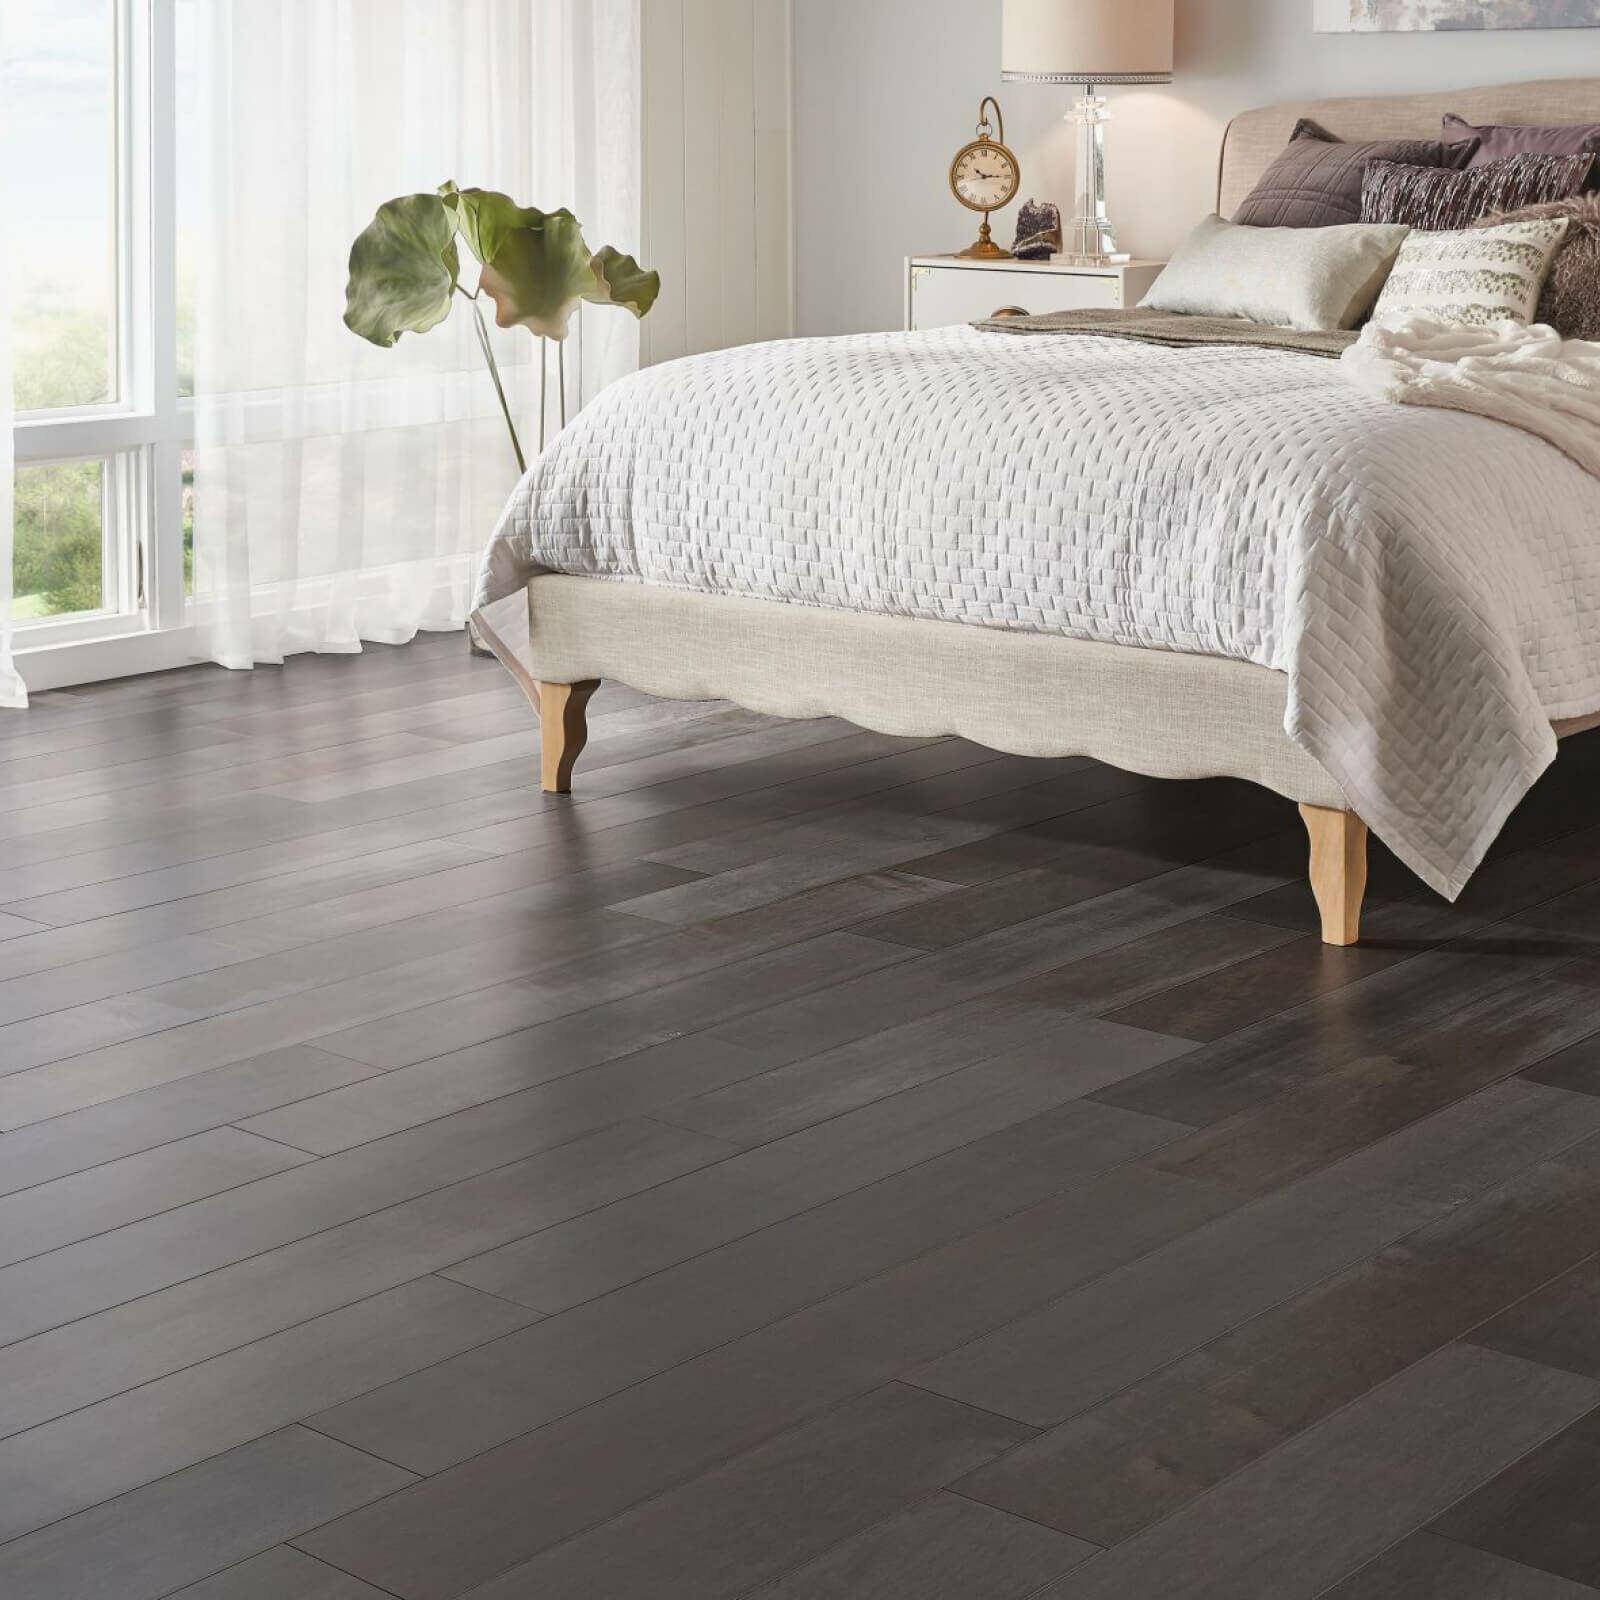 solid-or-engineered-hardwood | Total Flooring Source